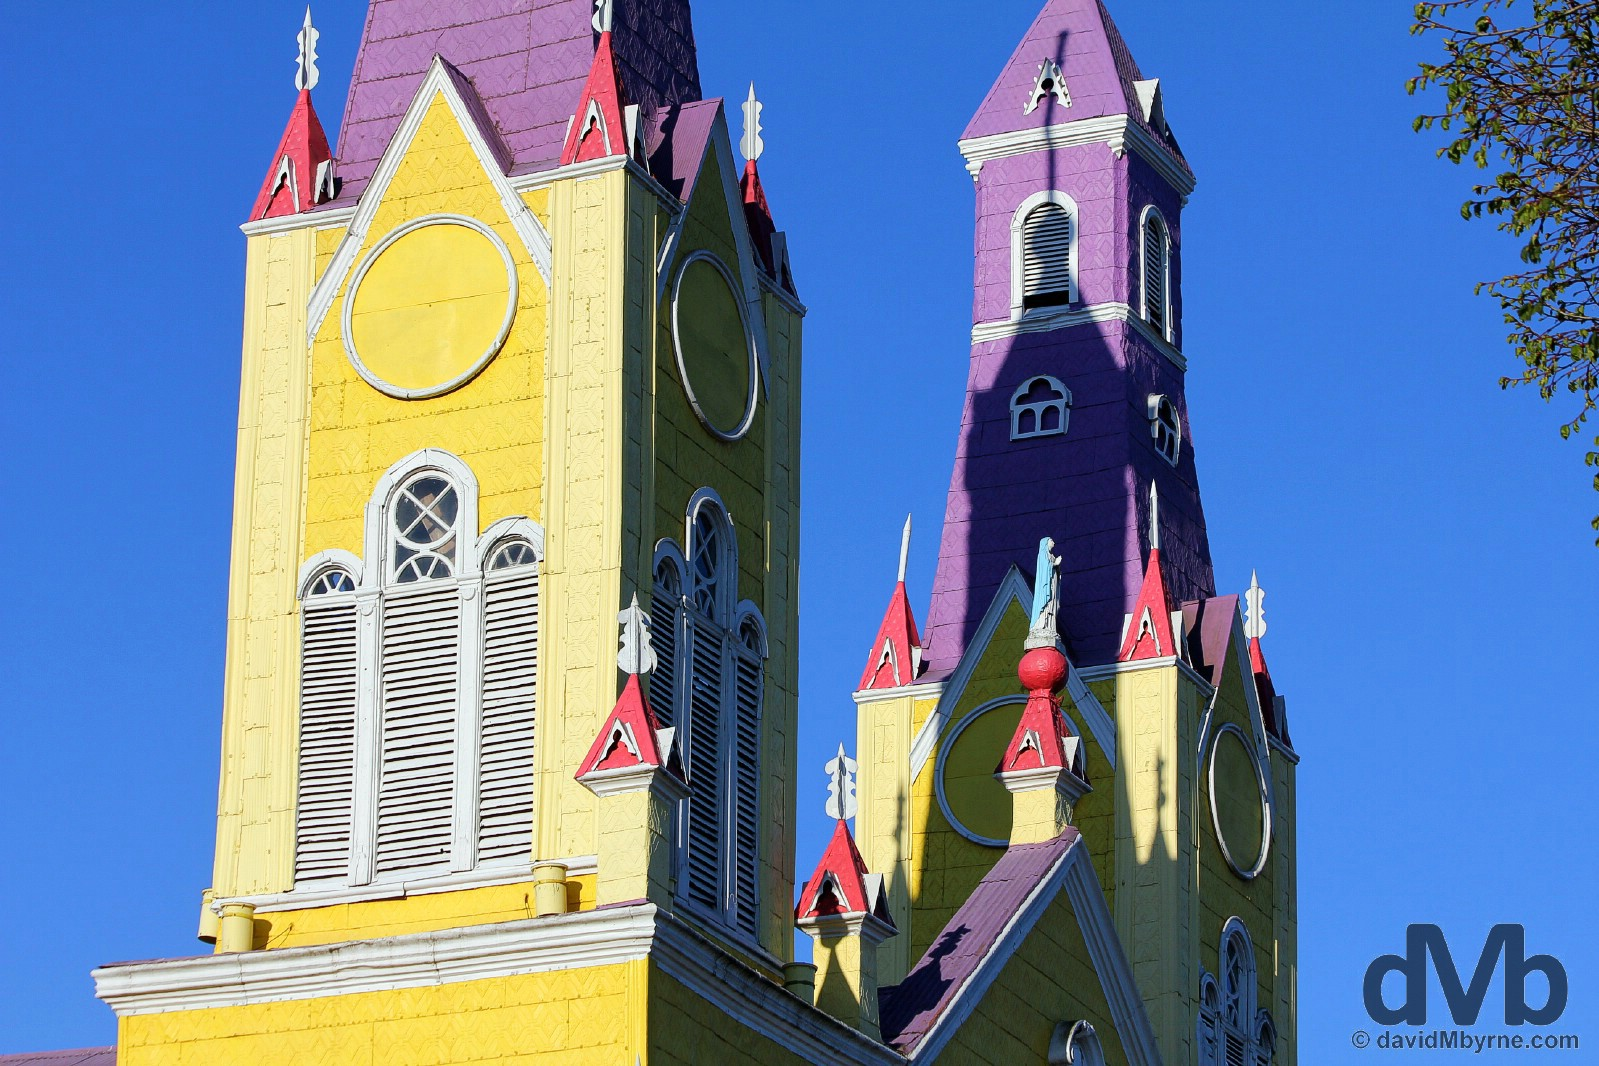 The spires of Iglesia de San Francisco in Plaza Armas, Castro, Chiloe, Chile. October 22, 2015.